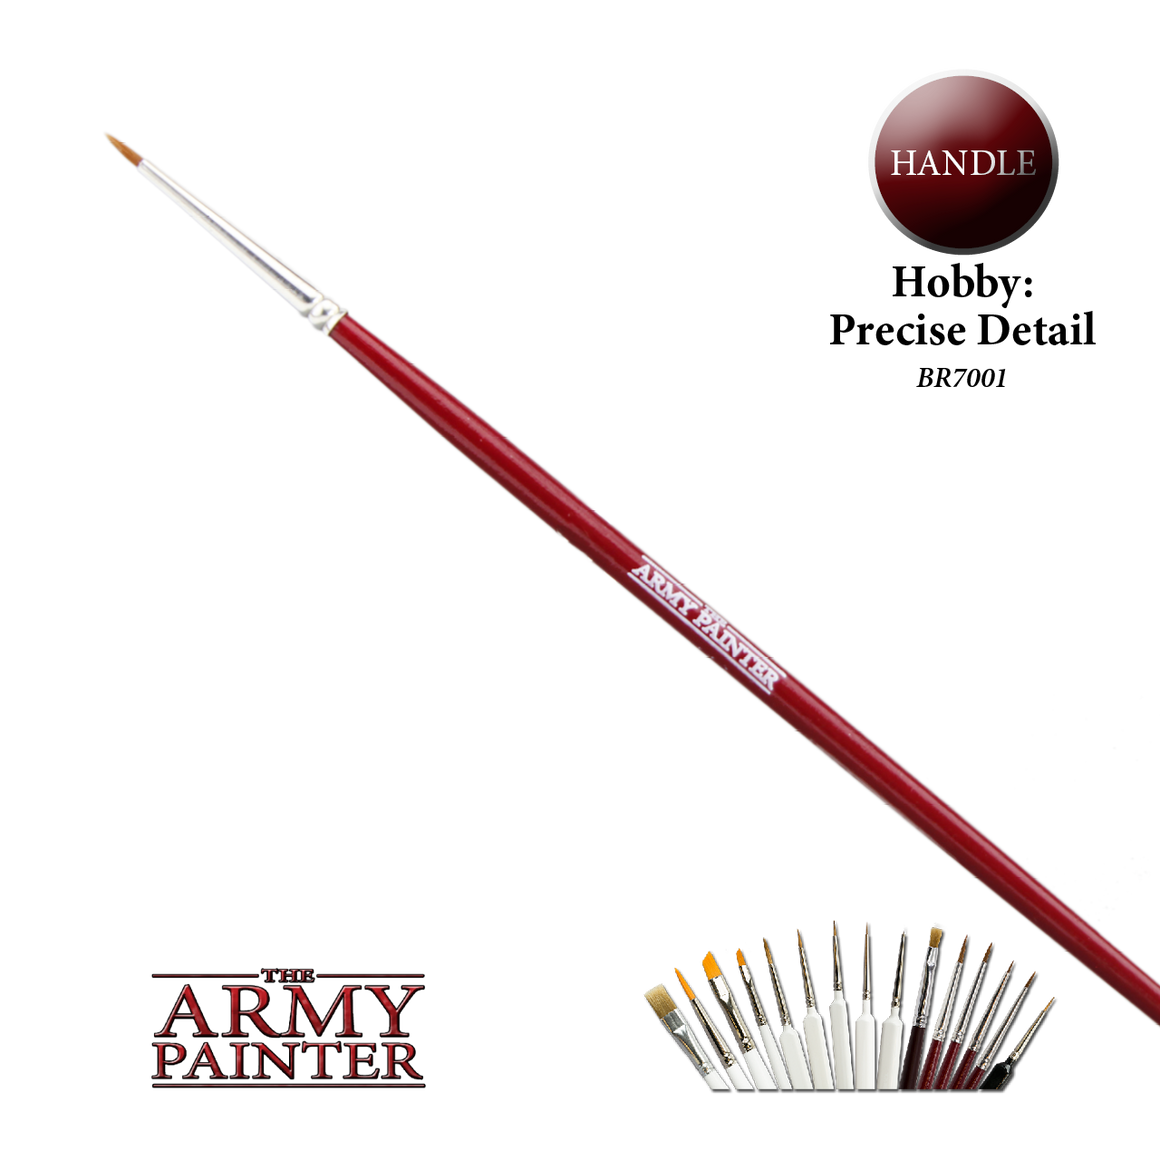 Army Painter Precise Detail Brush